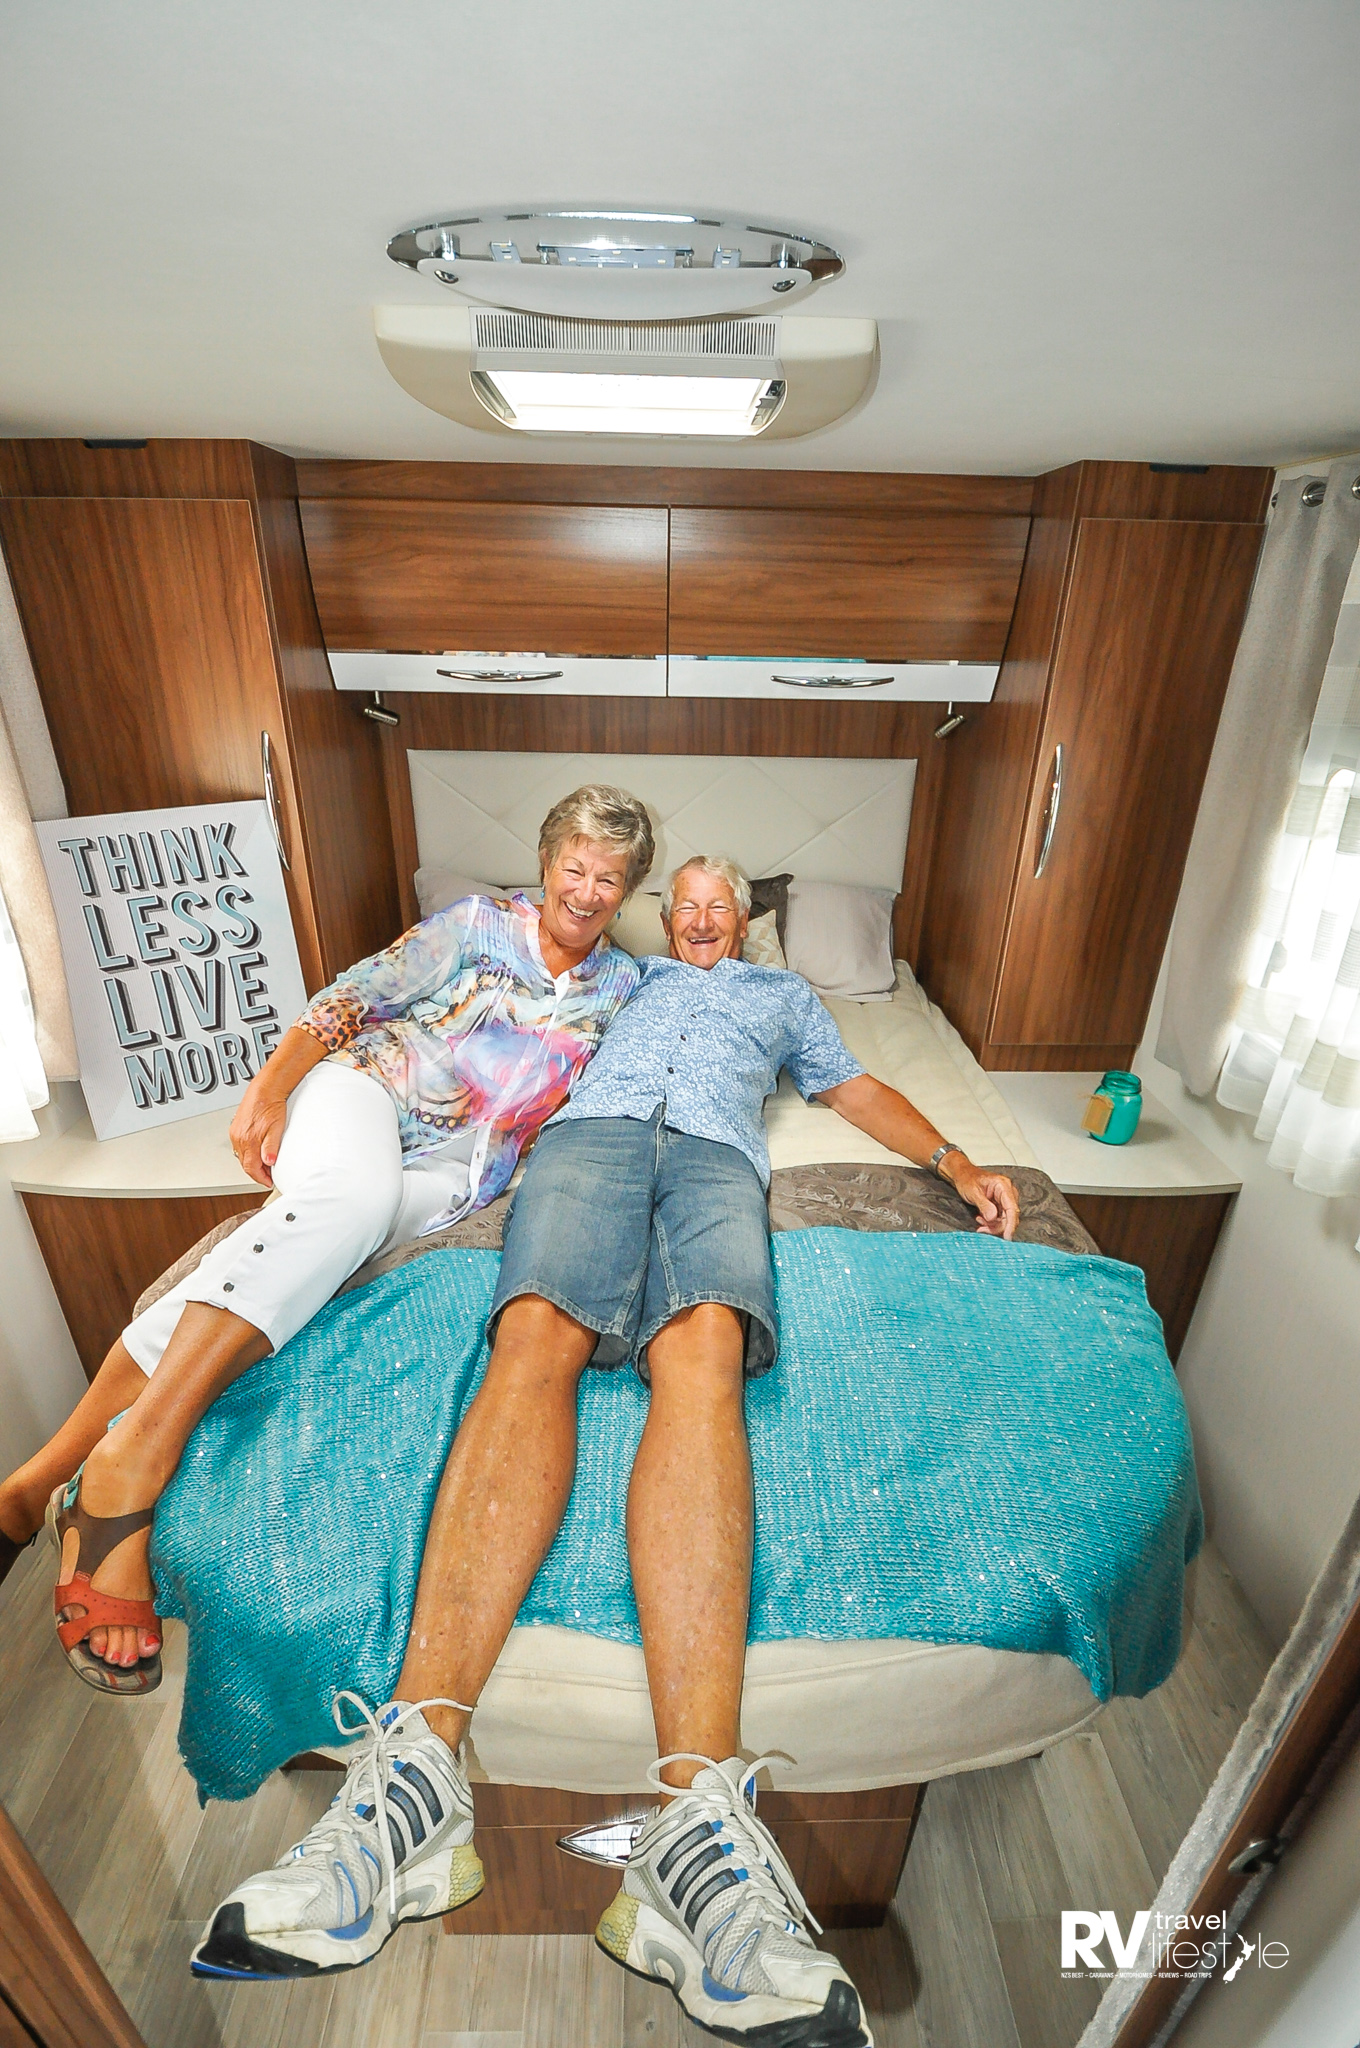 Now we're having fun – I think this couple loved the bedroom! Measuring 1500 x 2050mm, it's a good size bed for most